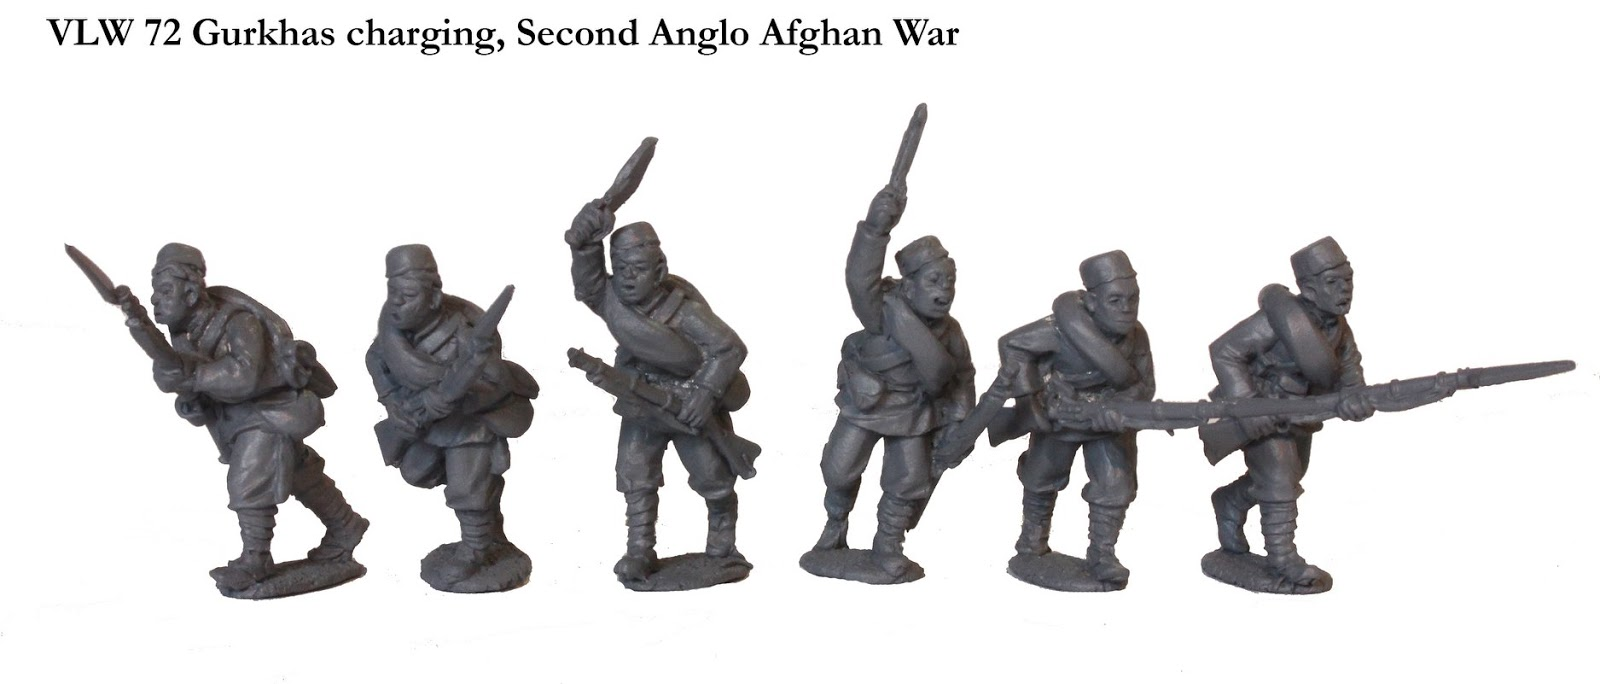 Wargame News and Terrain: Perry Miniatures: New 2nd Anglo